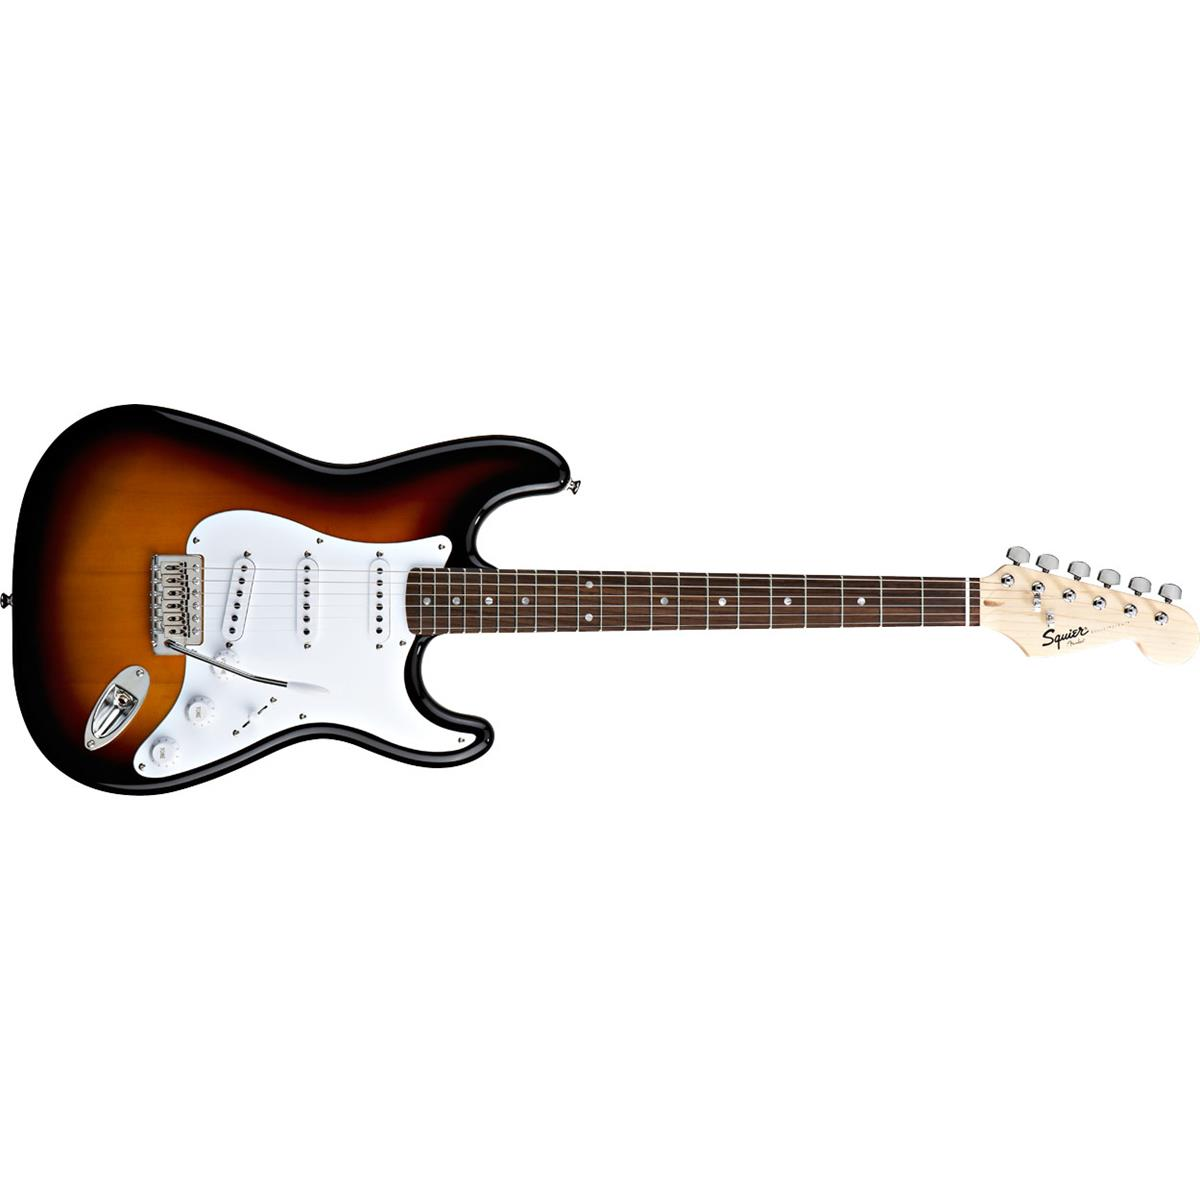 SQUIER BULLET STRATOCASTER BROWN SUNBURST - 0310001532